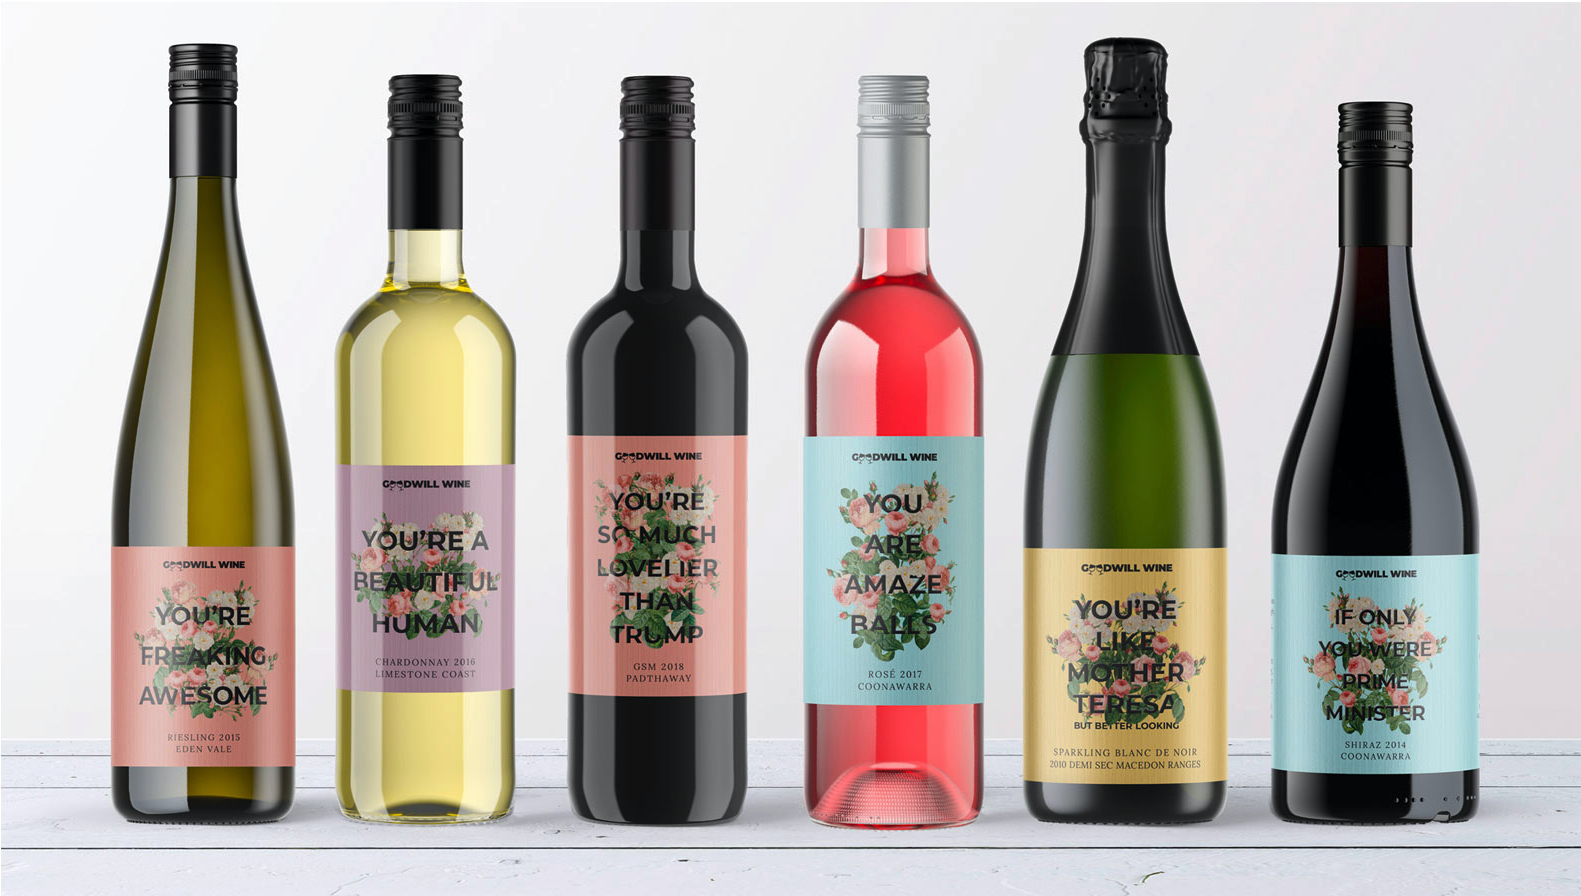 Goodwill Wine's labels are a fun way to remind the person you've given them to (or yourself!) that they're making the world better — just by drinking the wine and helping support charities like us.